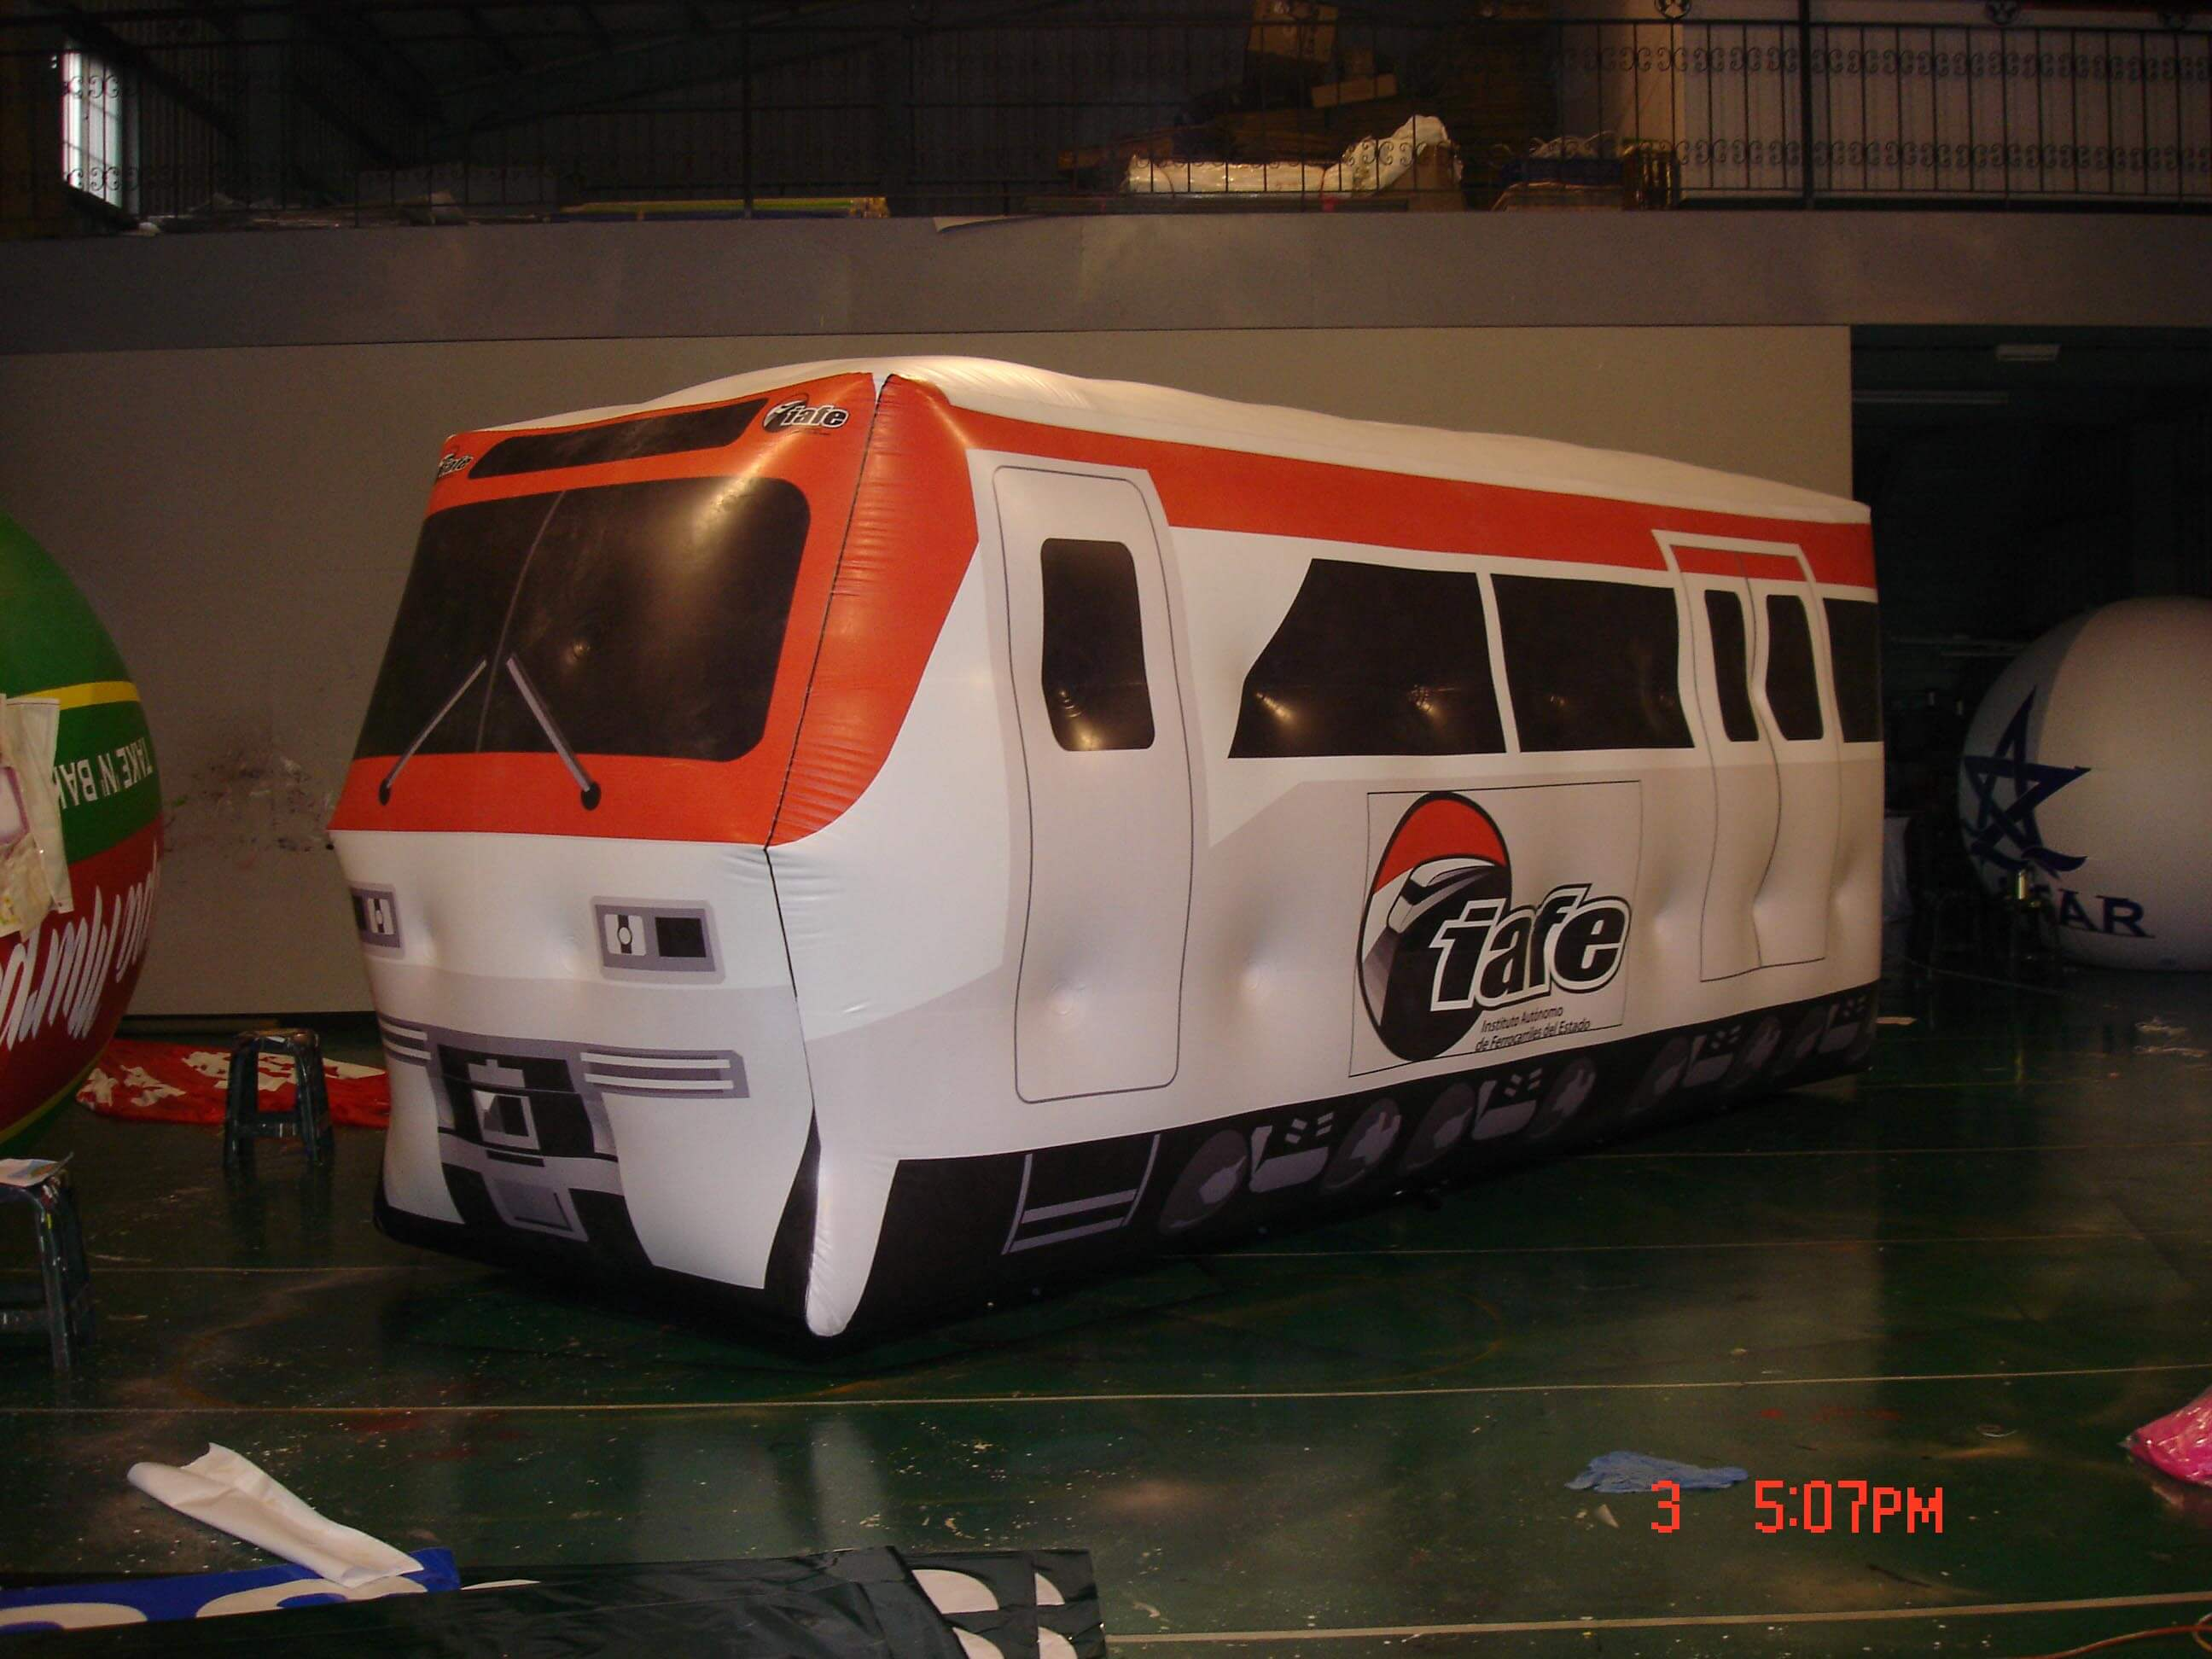 Inflatable white and red train carriage balloon火車車廂廣告氣球